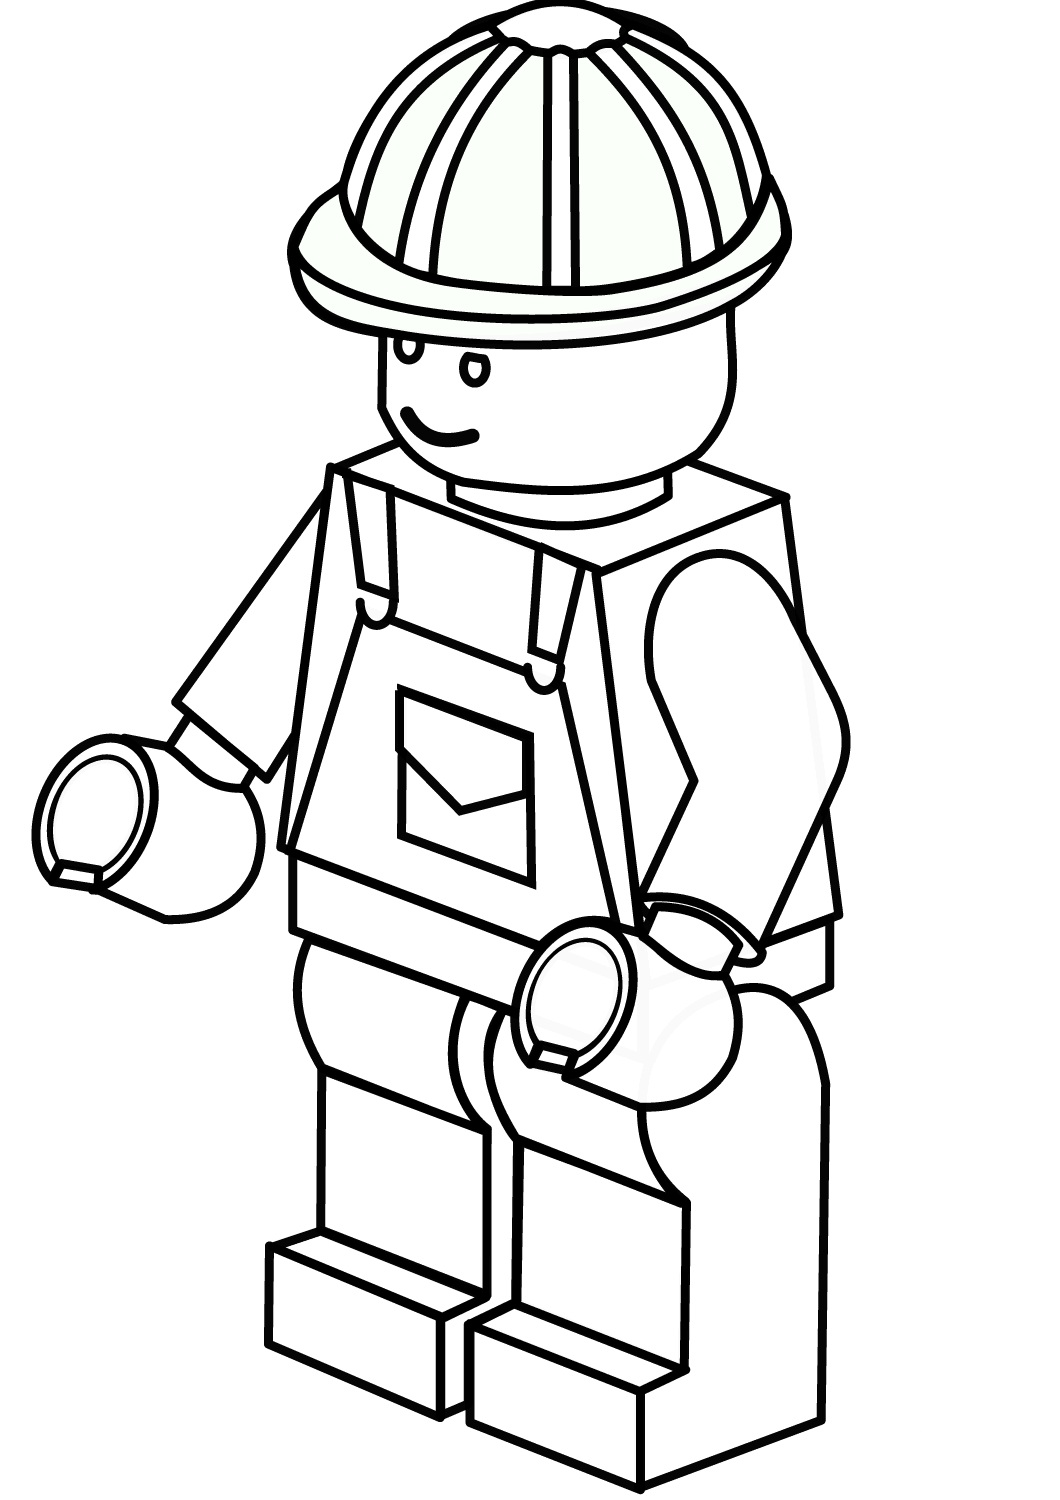 Lego Construction Worker